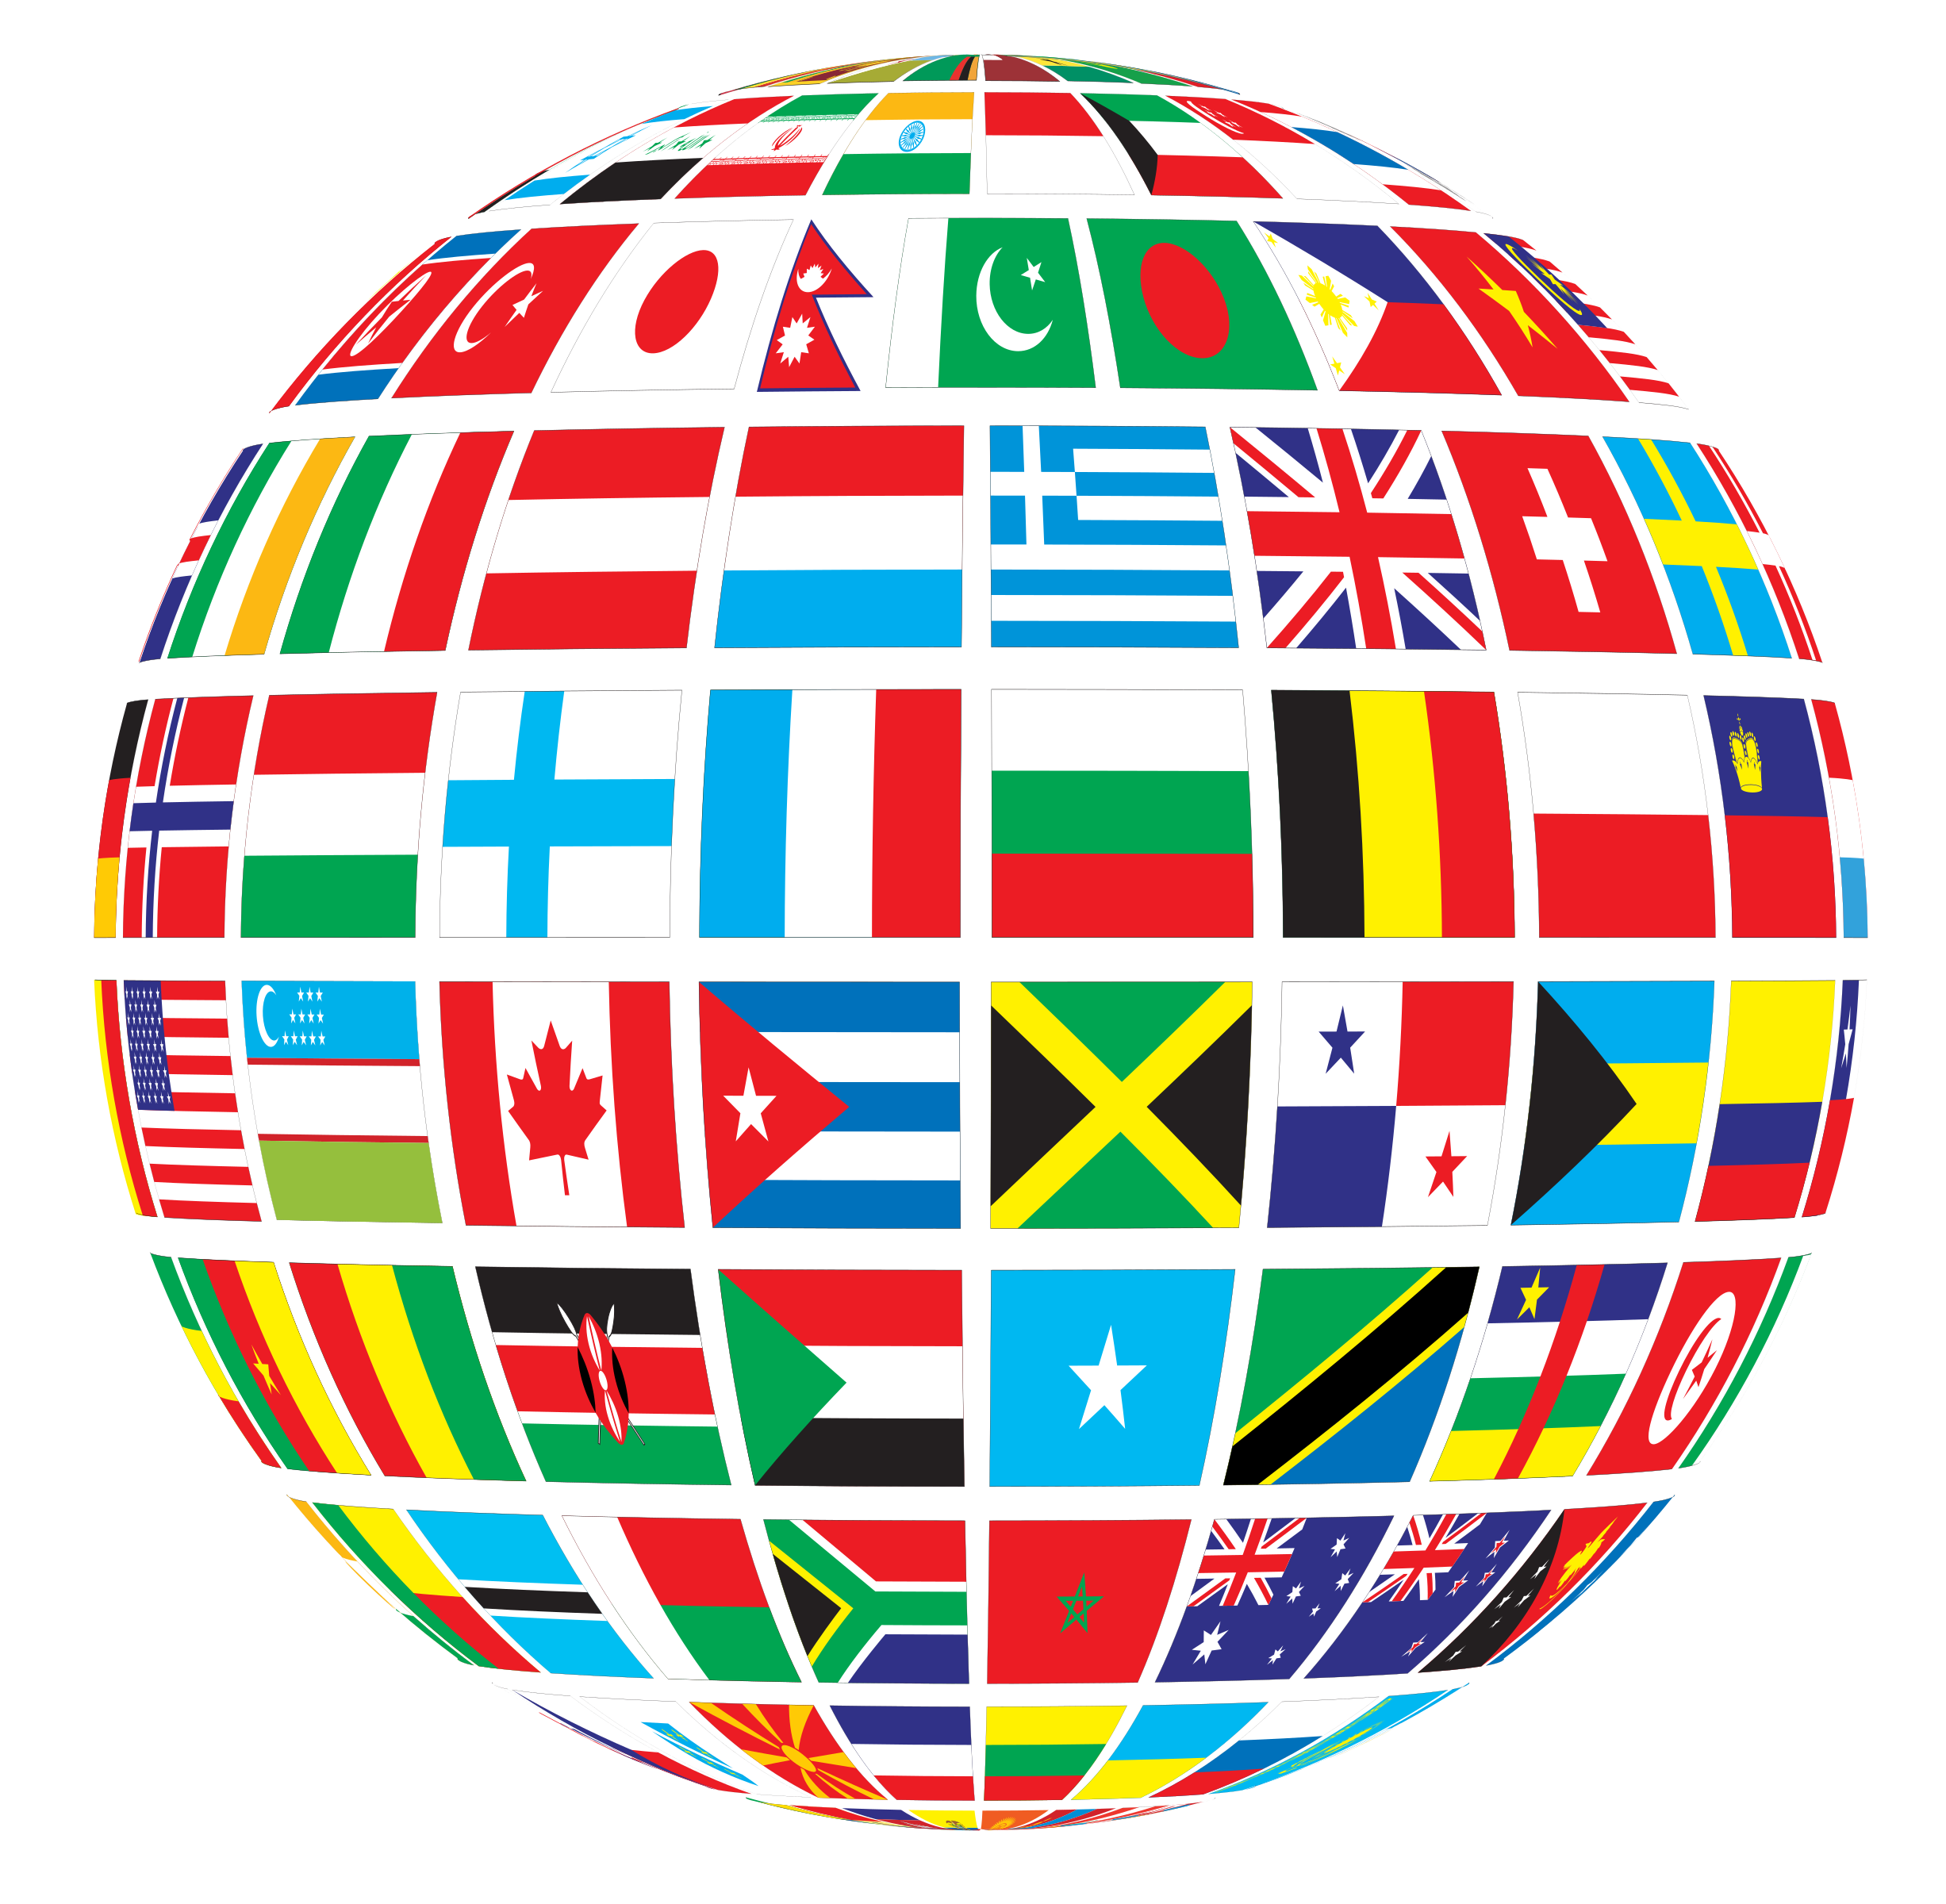 Clipart crown on top of the world graphic royalty free library Developing Global Leaders - Ron Palinkas graphic royalty free library